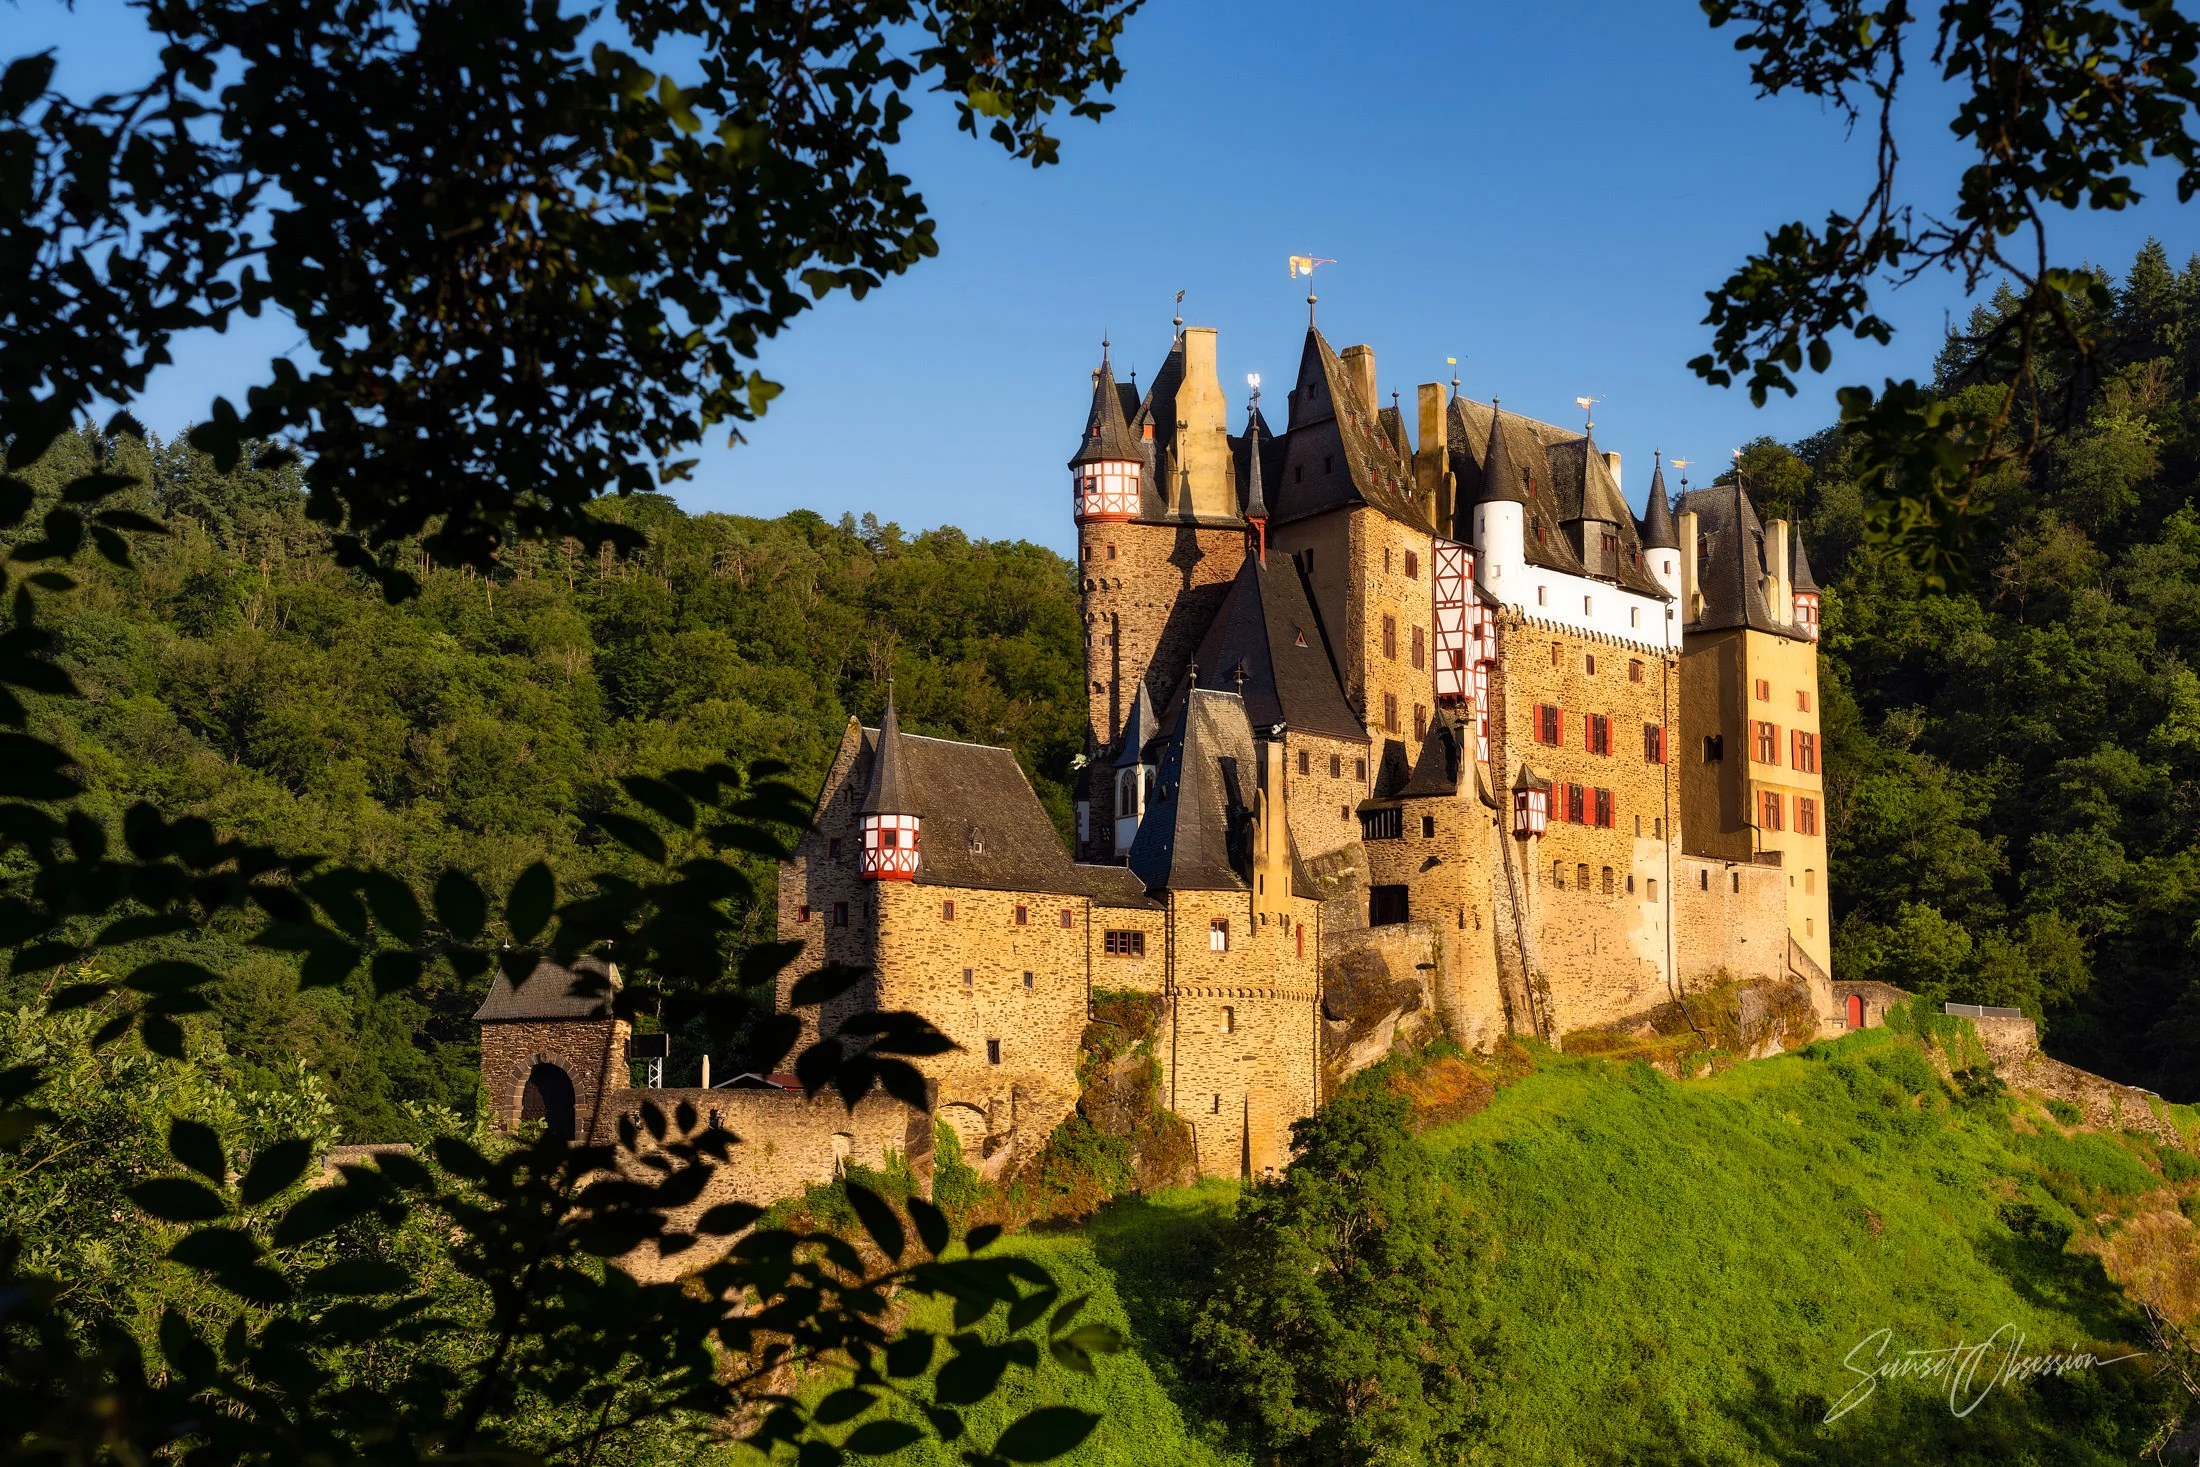 Burg Eltz from the western viewpoint